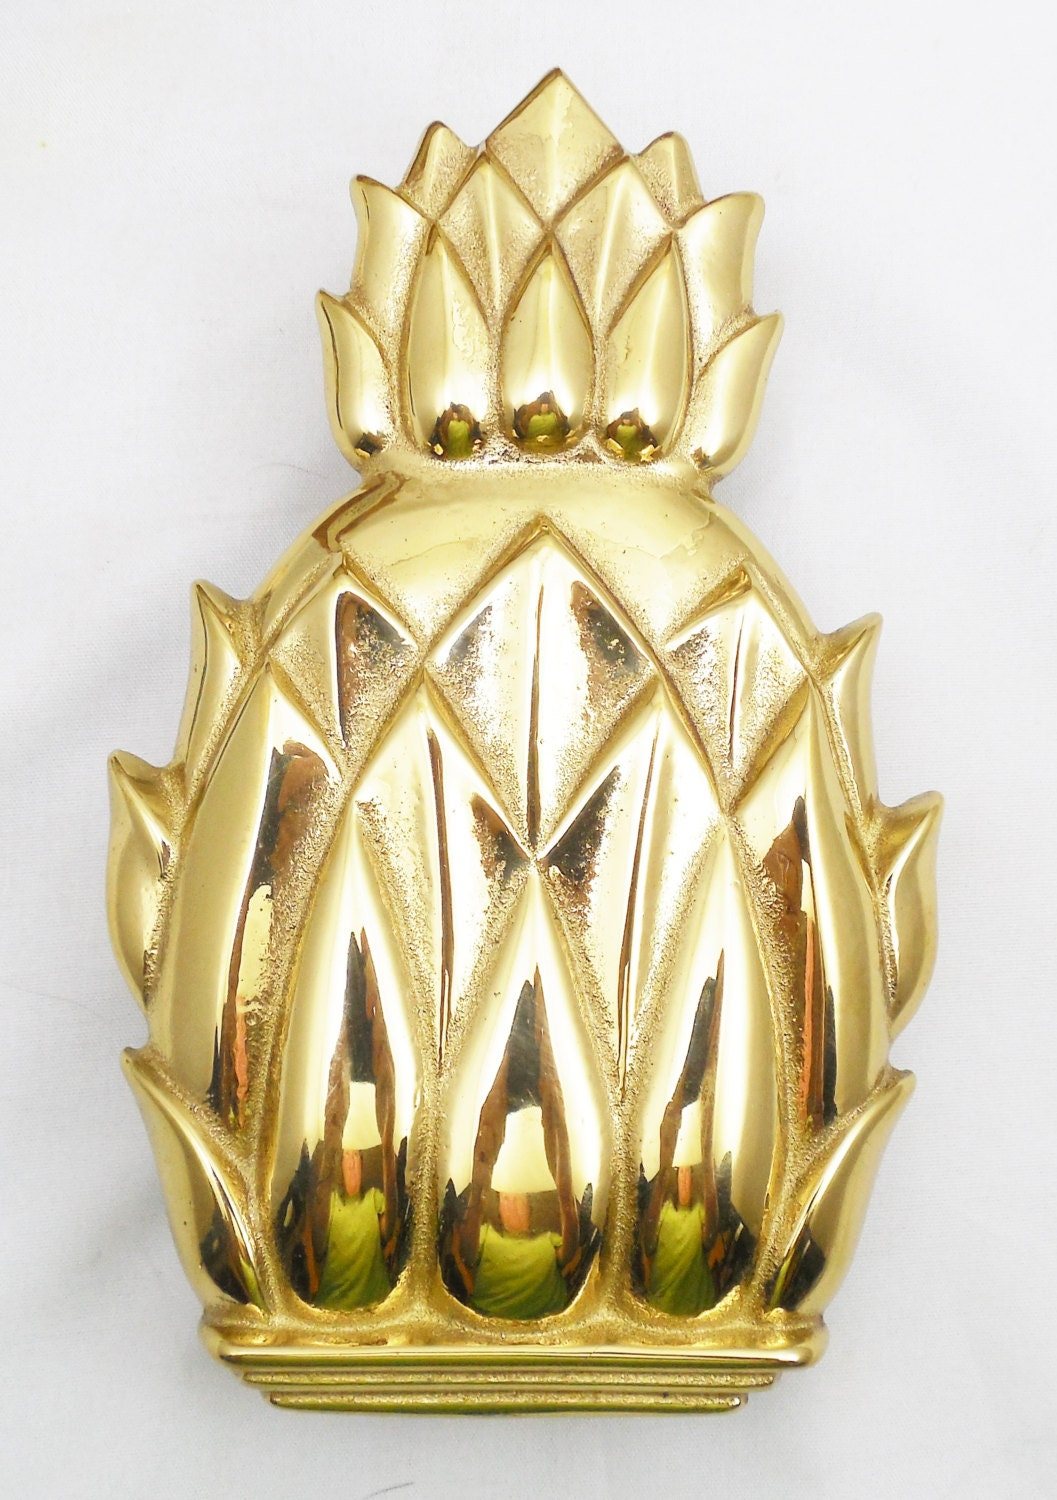 Virginia metalcrafters polished brass pineapple door knocker 6 - Pineapple door knocker ...